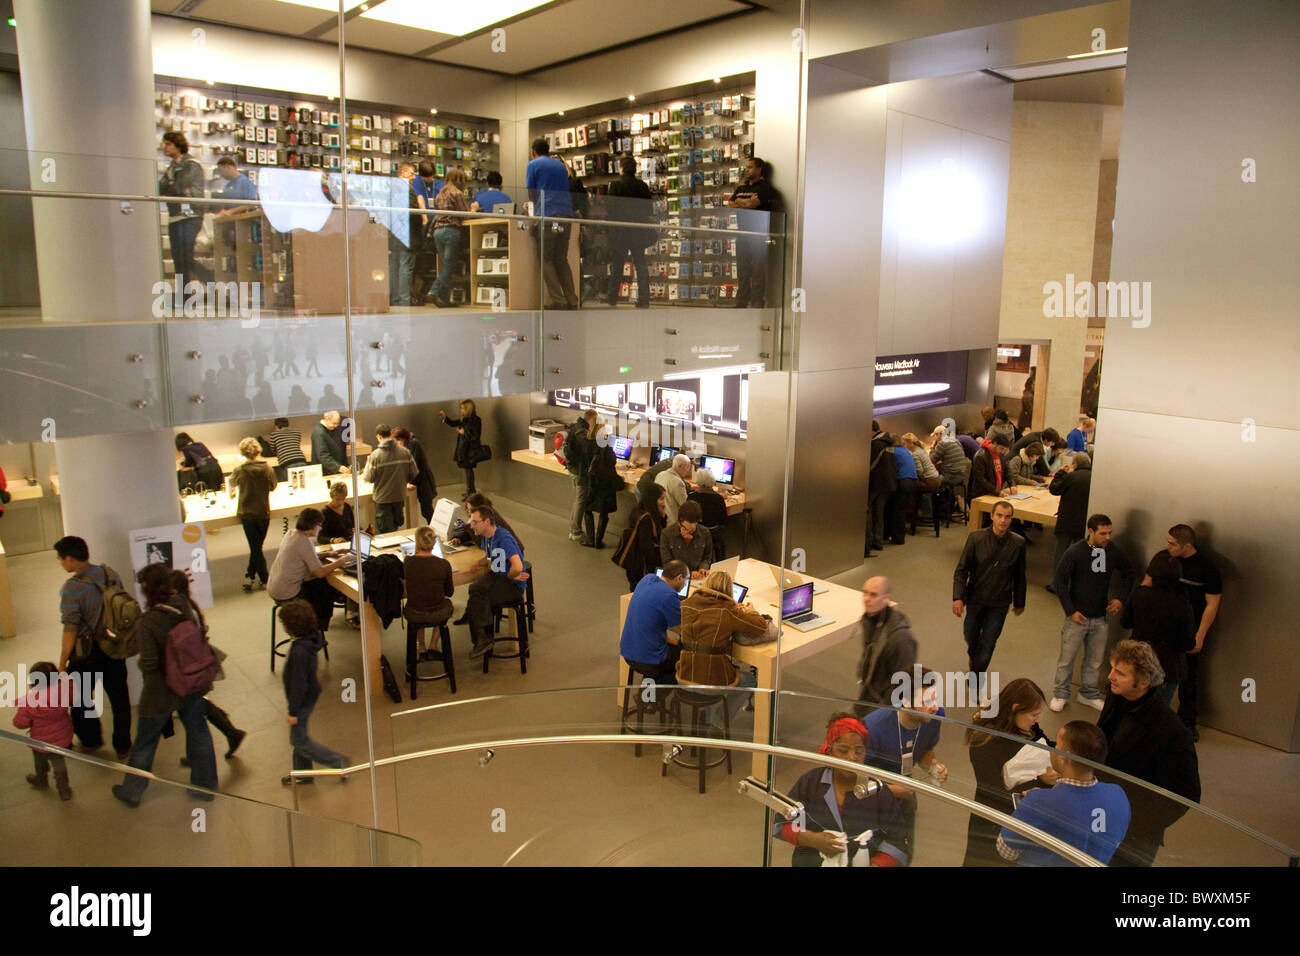 Inside Apple Store Stock Photos & Inside Apple Store Stock Images ...